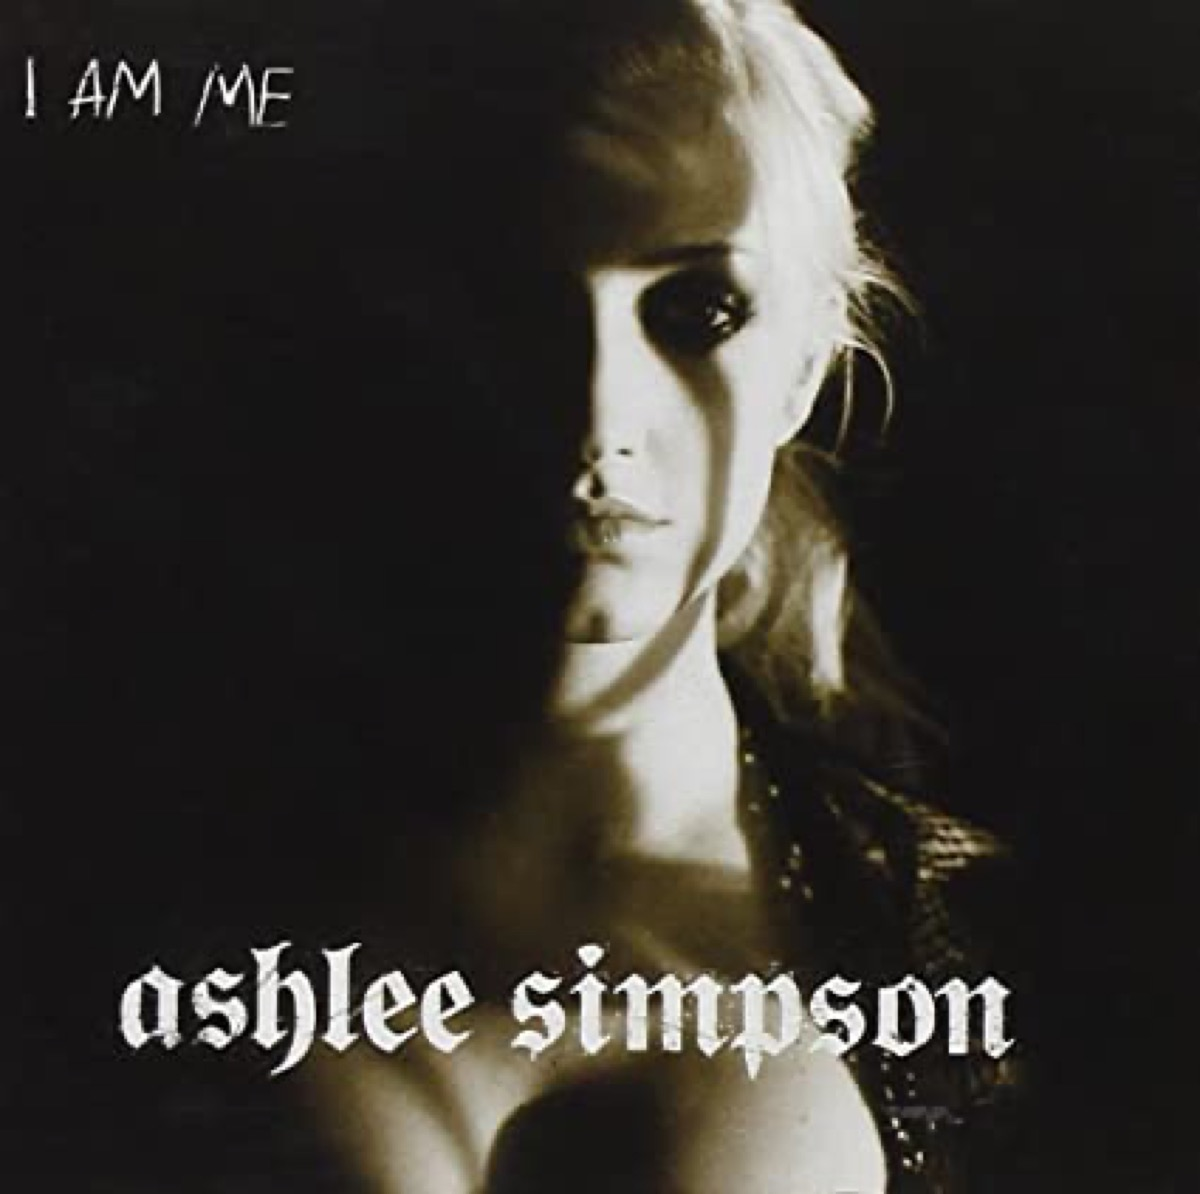 """The album cover of """"I Am Me"""" by Ashlee Simpson"""